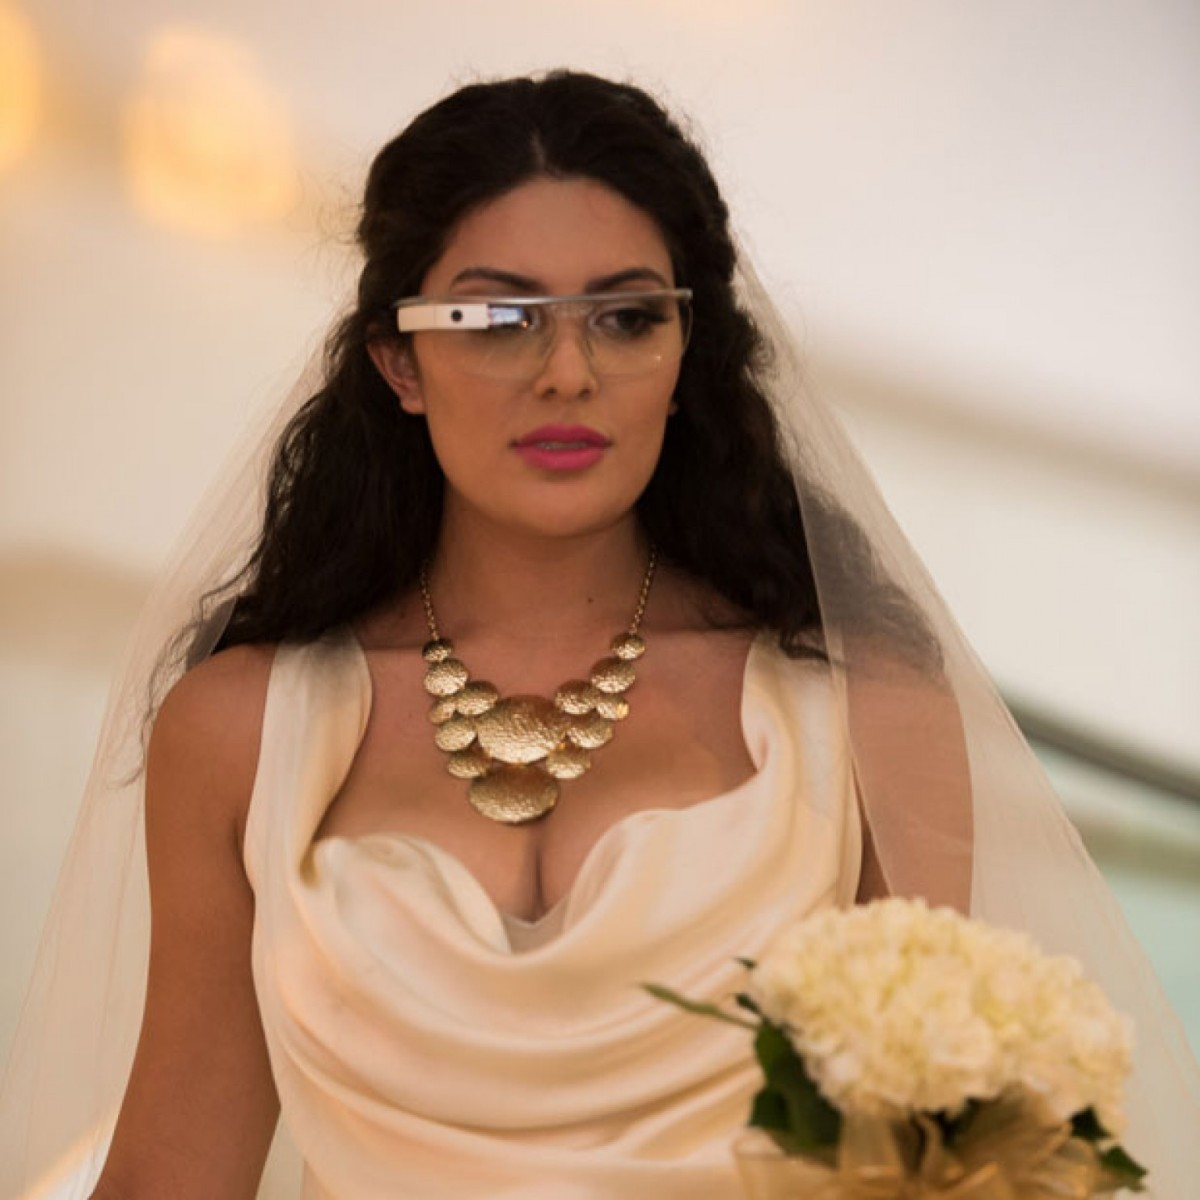 Do-Google-Glass-fit-the-bride